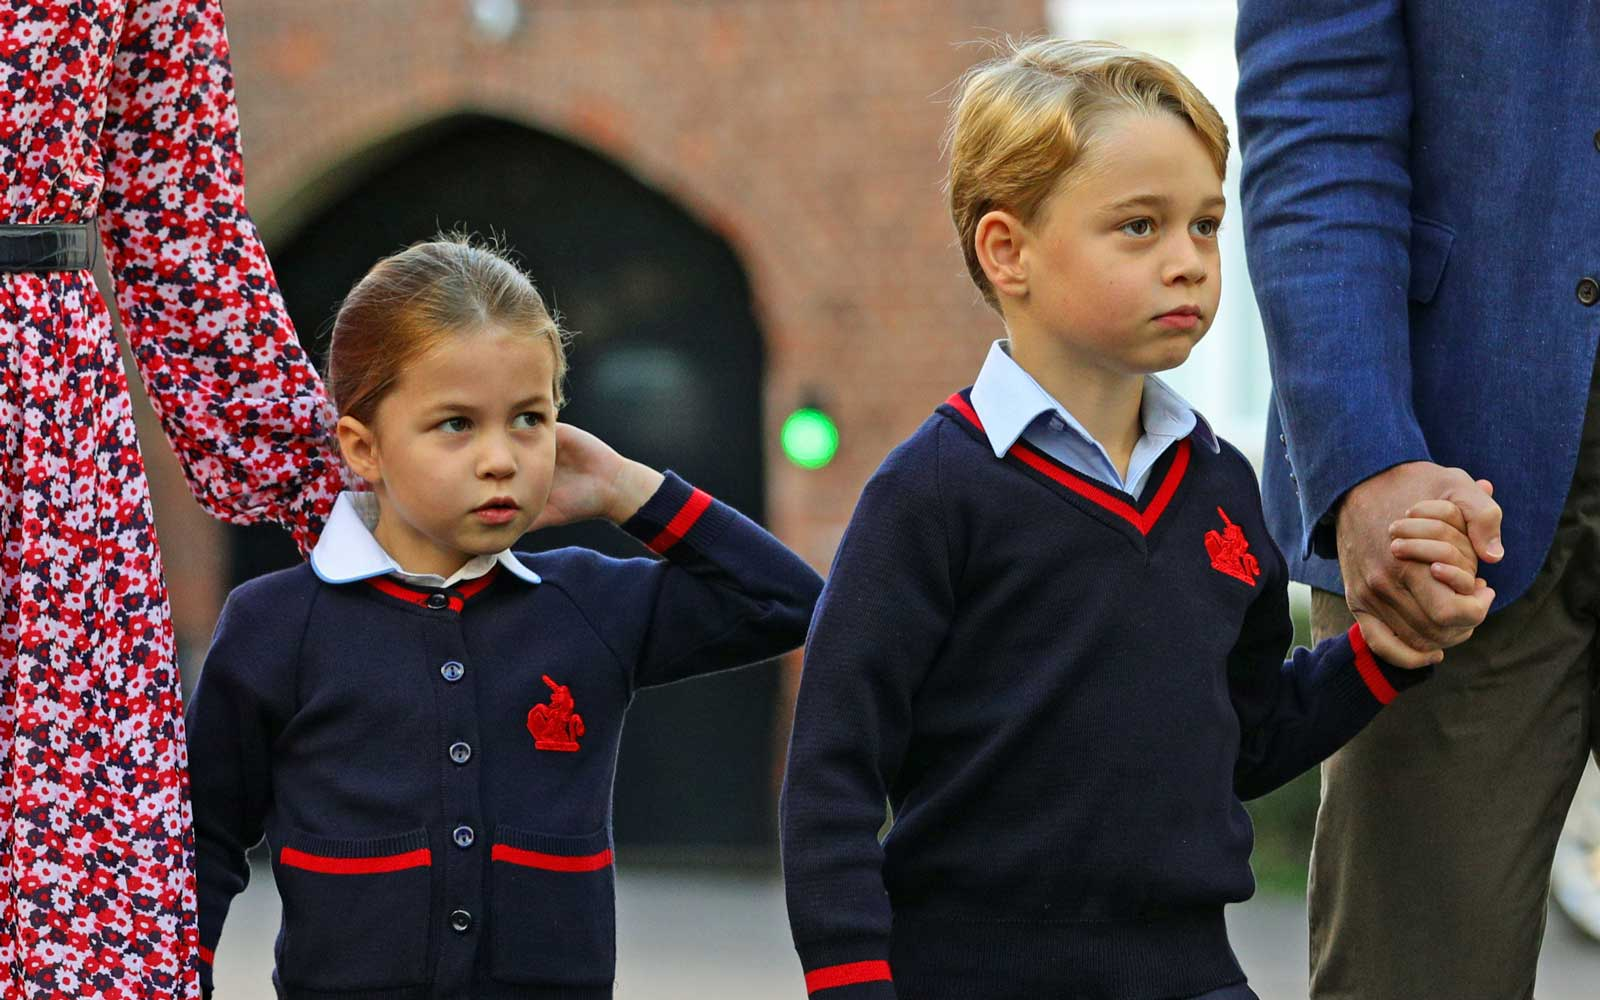 Britain's Princess Charlotte of Cambridge, with her brother, Britain's Prince George of Cambridge in London on September 5, 2019.